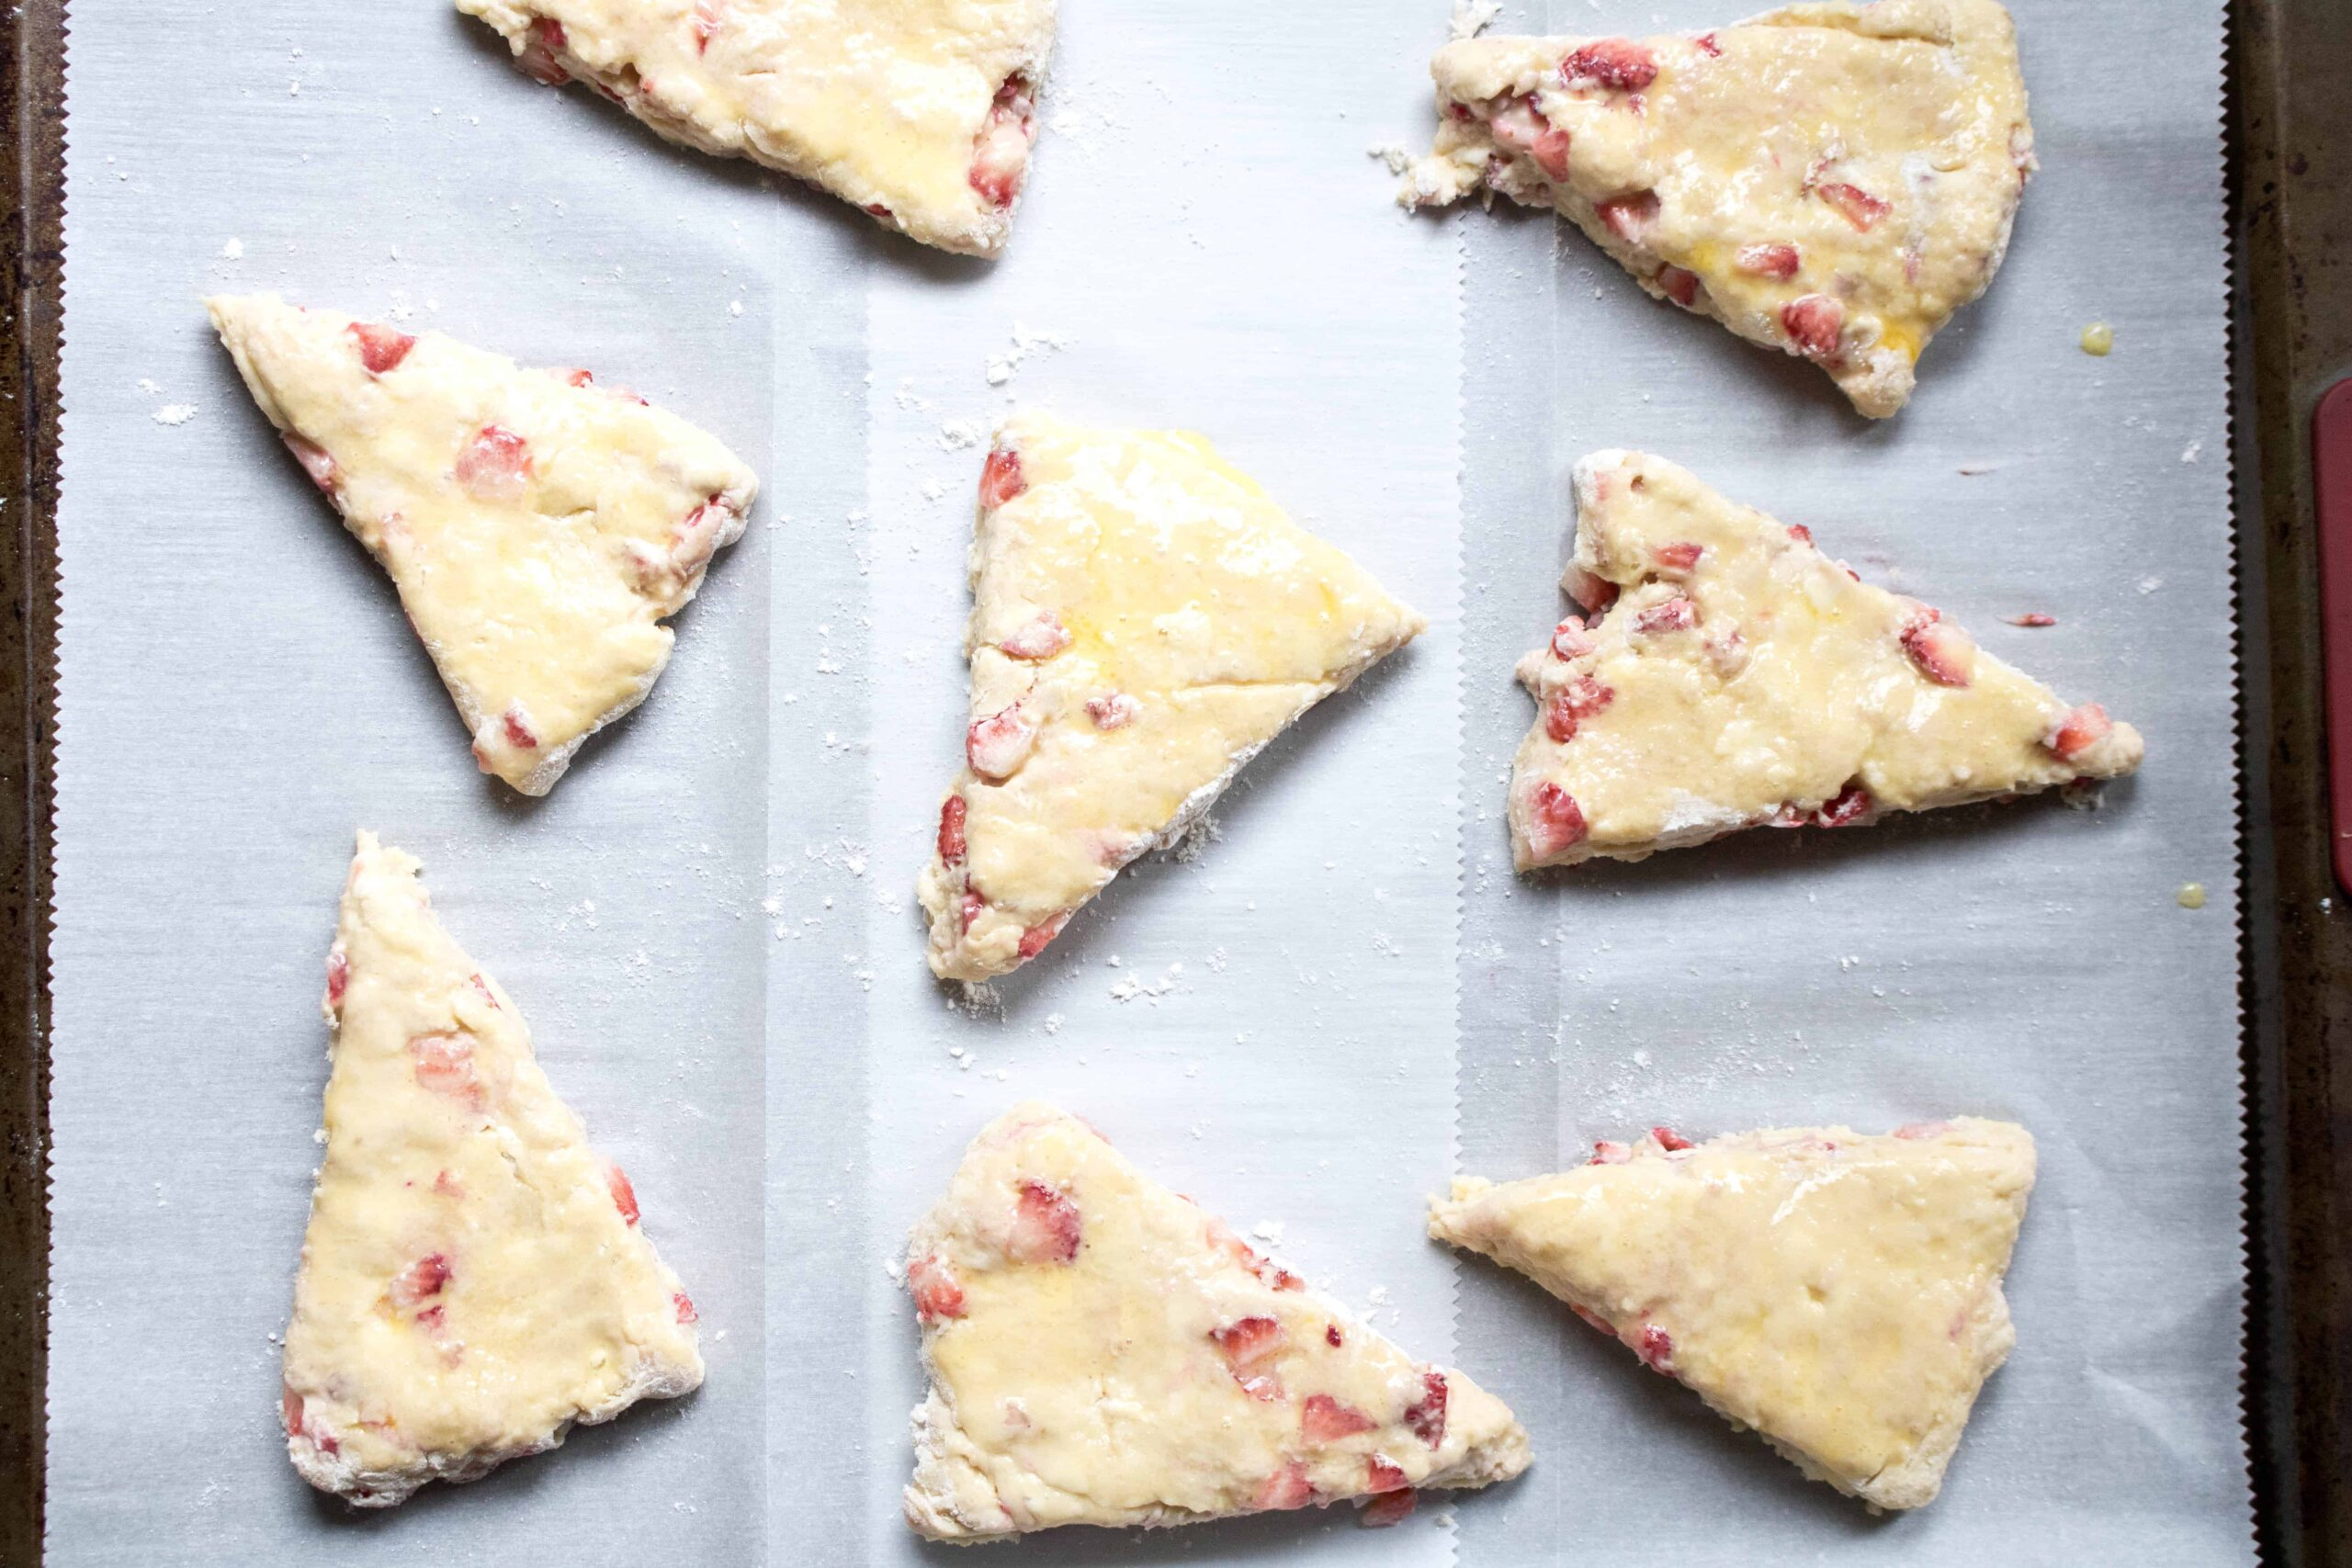 These Strawberries and Cream Scones are perfect for any brunch and to celebrate all of those gorgeous summer strawberries!